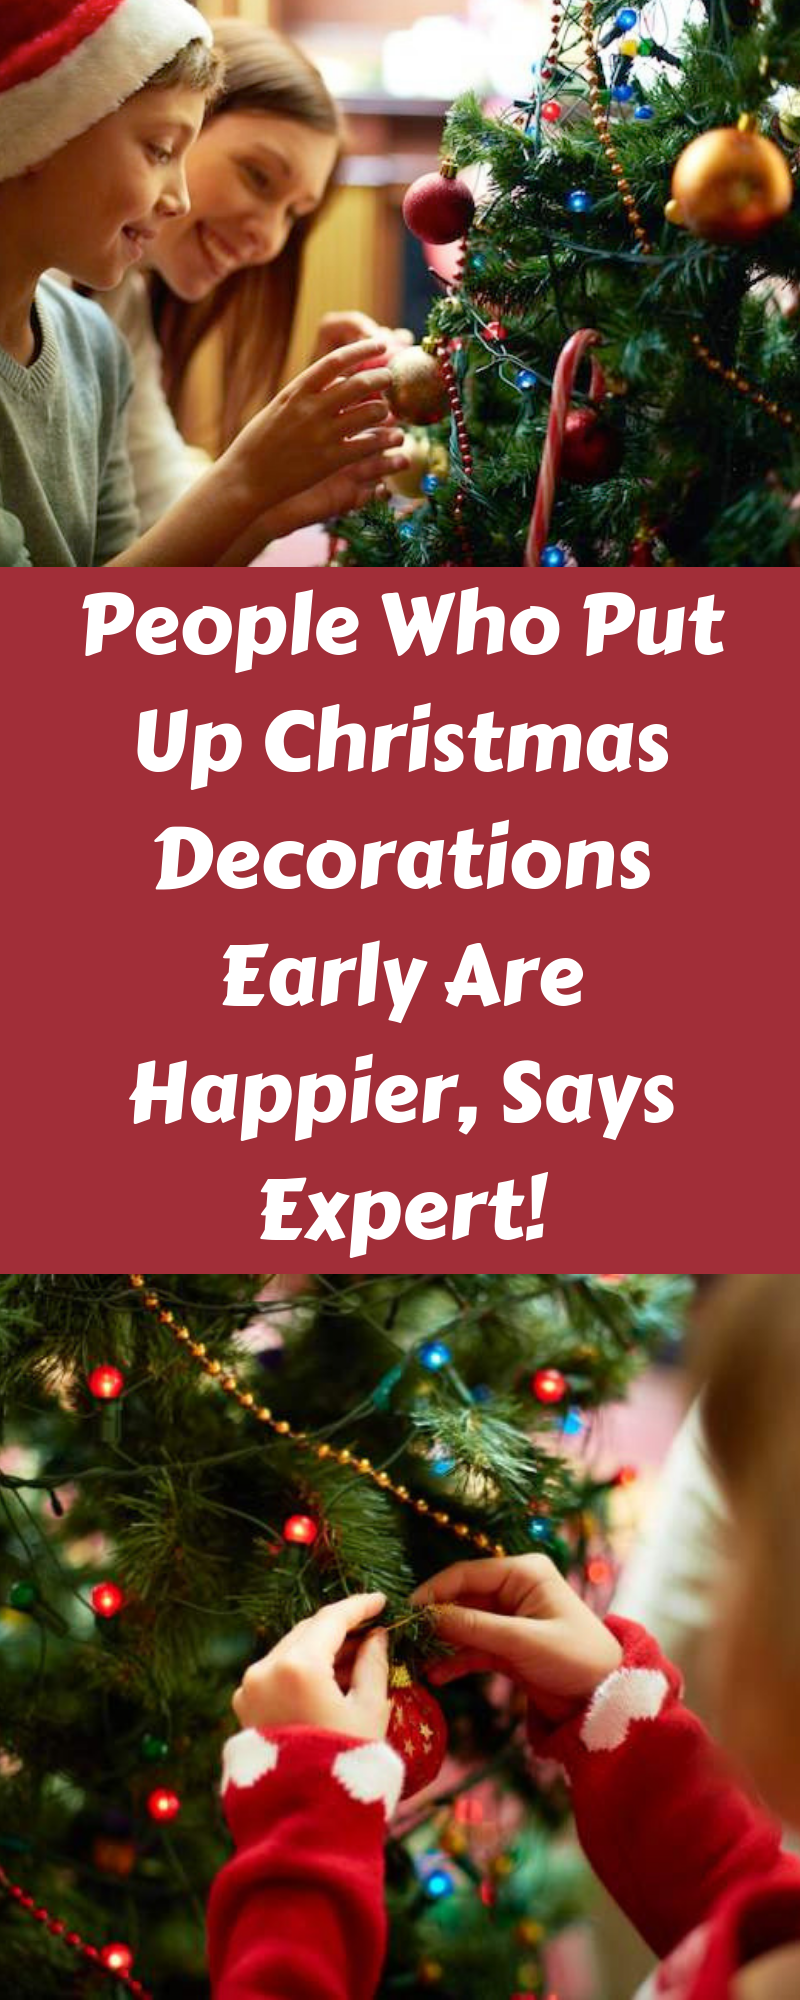 Decoration In October No Problem People Who Put Up Christmas Decorations Early Are Happier Says Expert Christmas Decorations Christmas Christmas Pictures